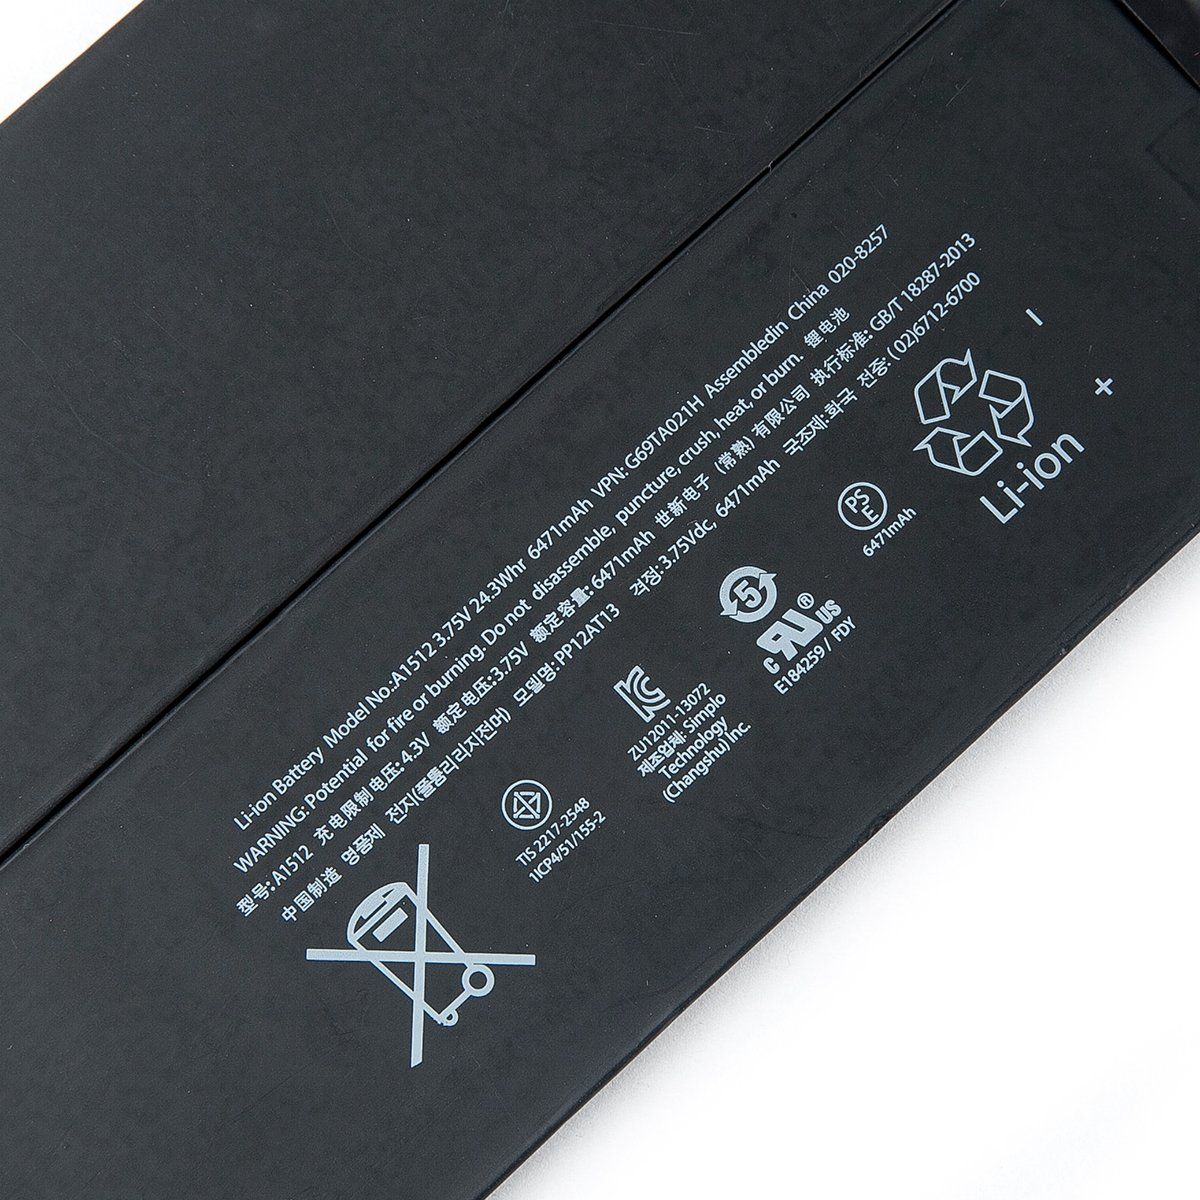 TANAKA A1512 Battery for Apple iPad Mini 2 A1489 A1490 A1491 & Apple iPad Mini 3 A1599 A1600 A1601 with Installation Tools 3.75V 6471mAh 24.3Whr by TANAKA (Image #4)